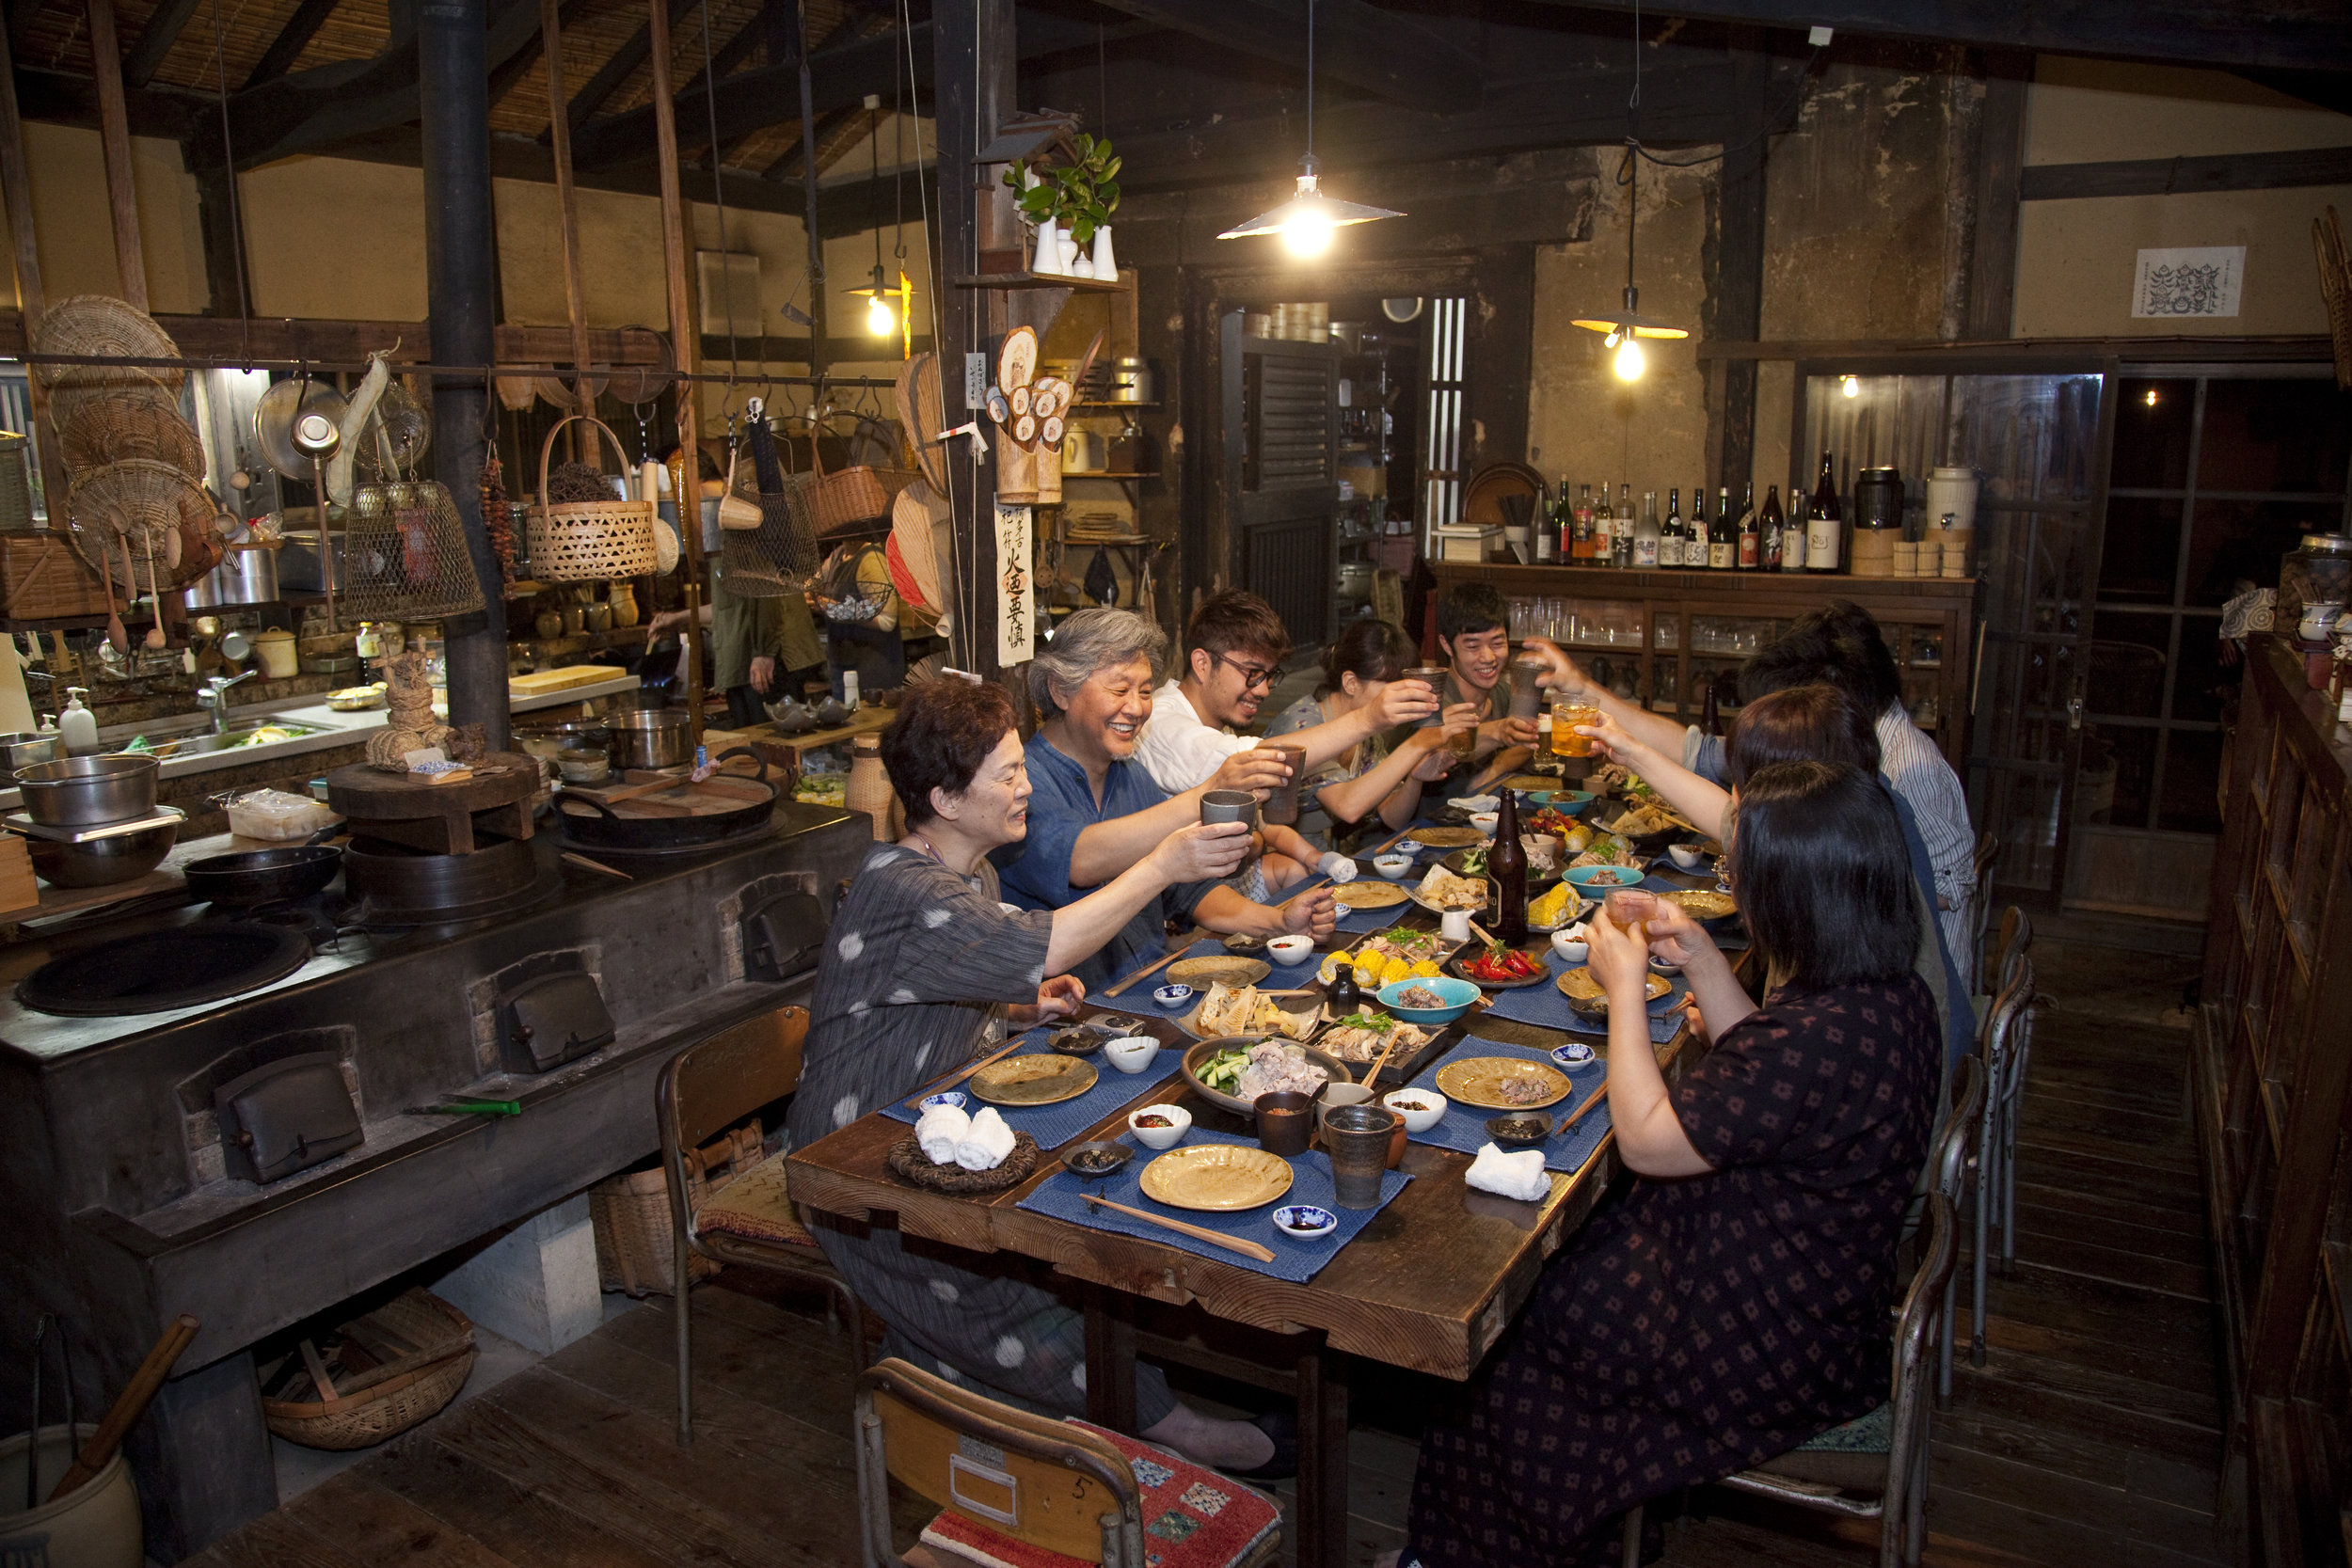 Takyo Abeke - Sitting around a dinner table, enjoying delightful conversation and home cooked dishes made with seasonal ingredients, a traditional daily life we cherish.